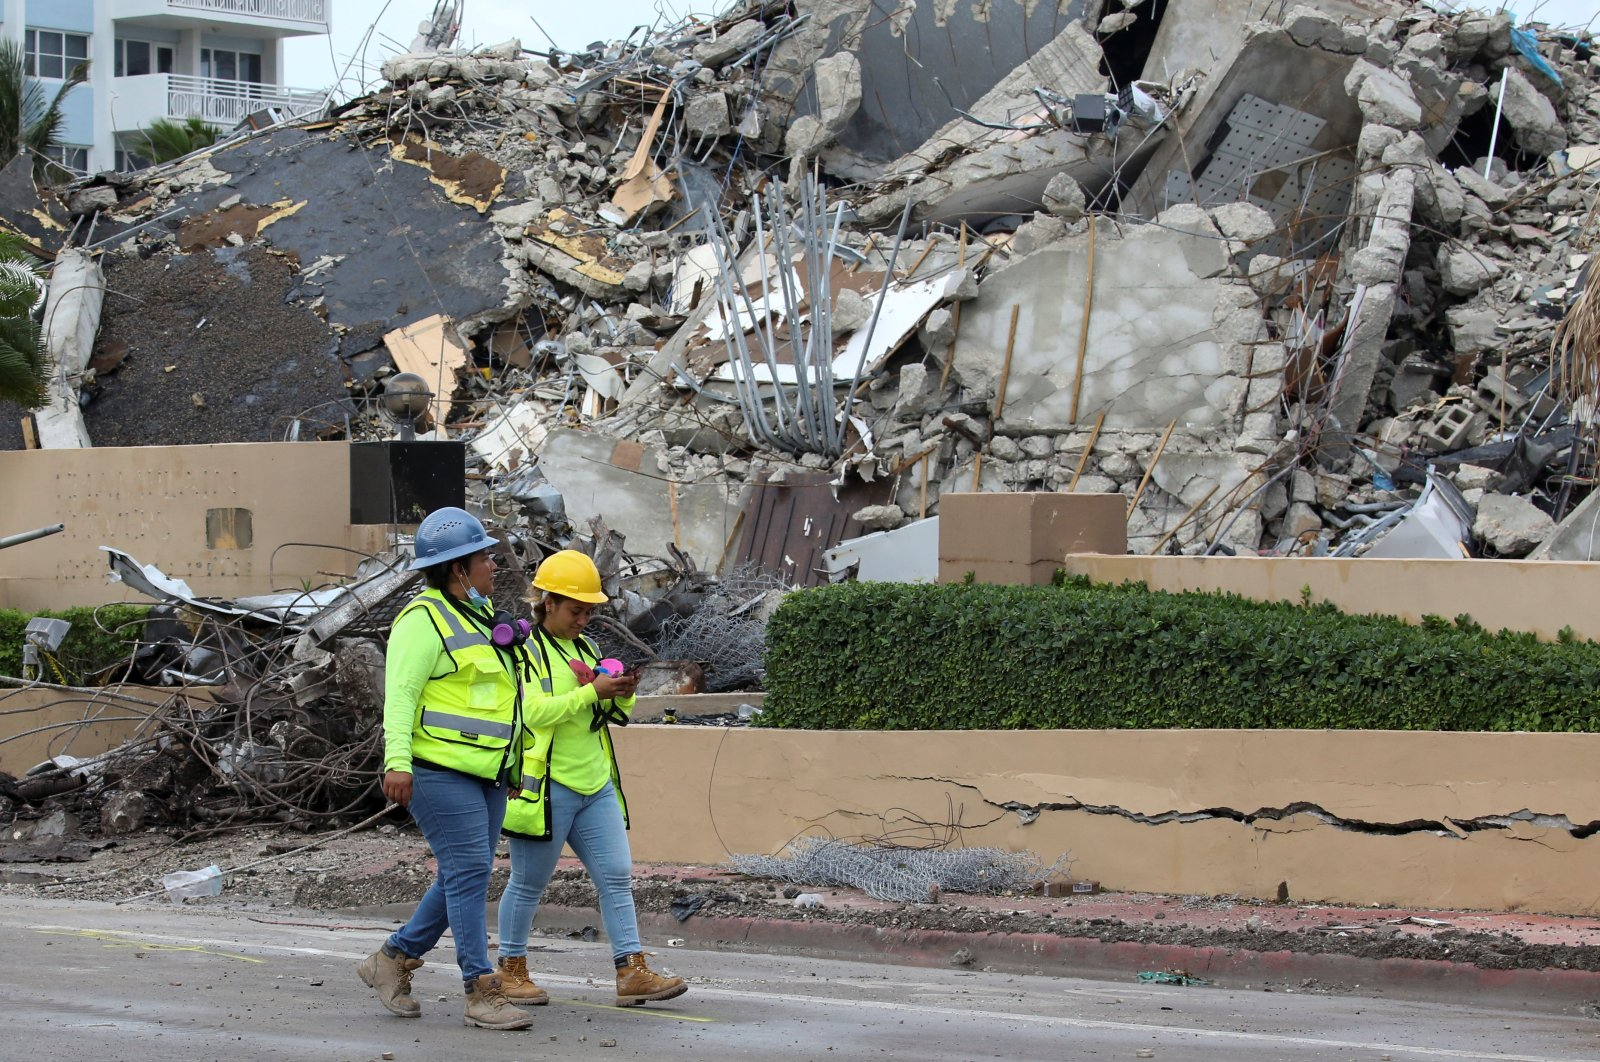 Rescue workers walk past debris after the managed demolition of the remaining part of Champlain Towers South complex as search-and-rescue efforts continue in Surfside, U.S. July 6, 2021. (Reuters Photo)